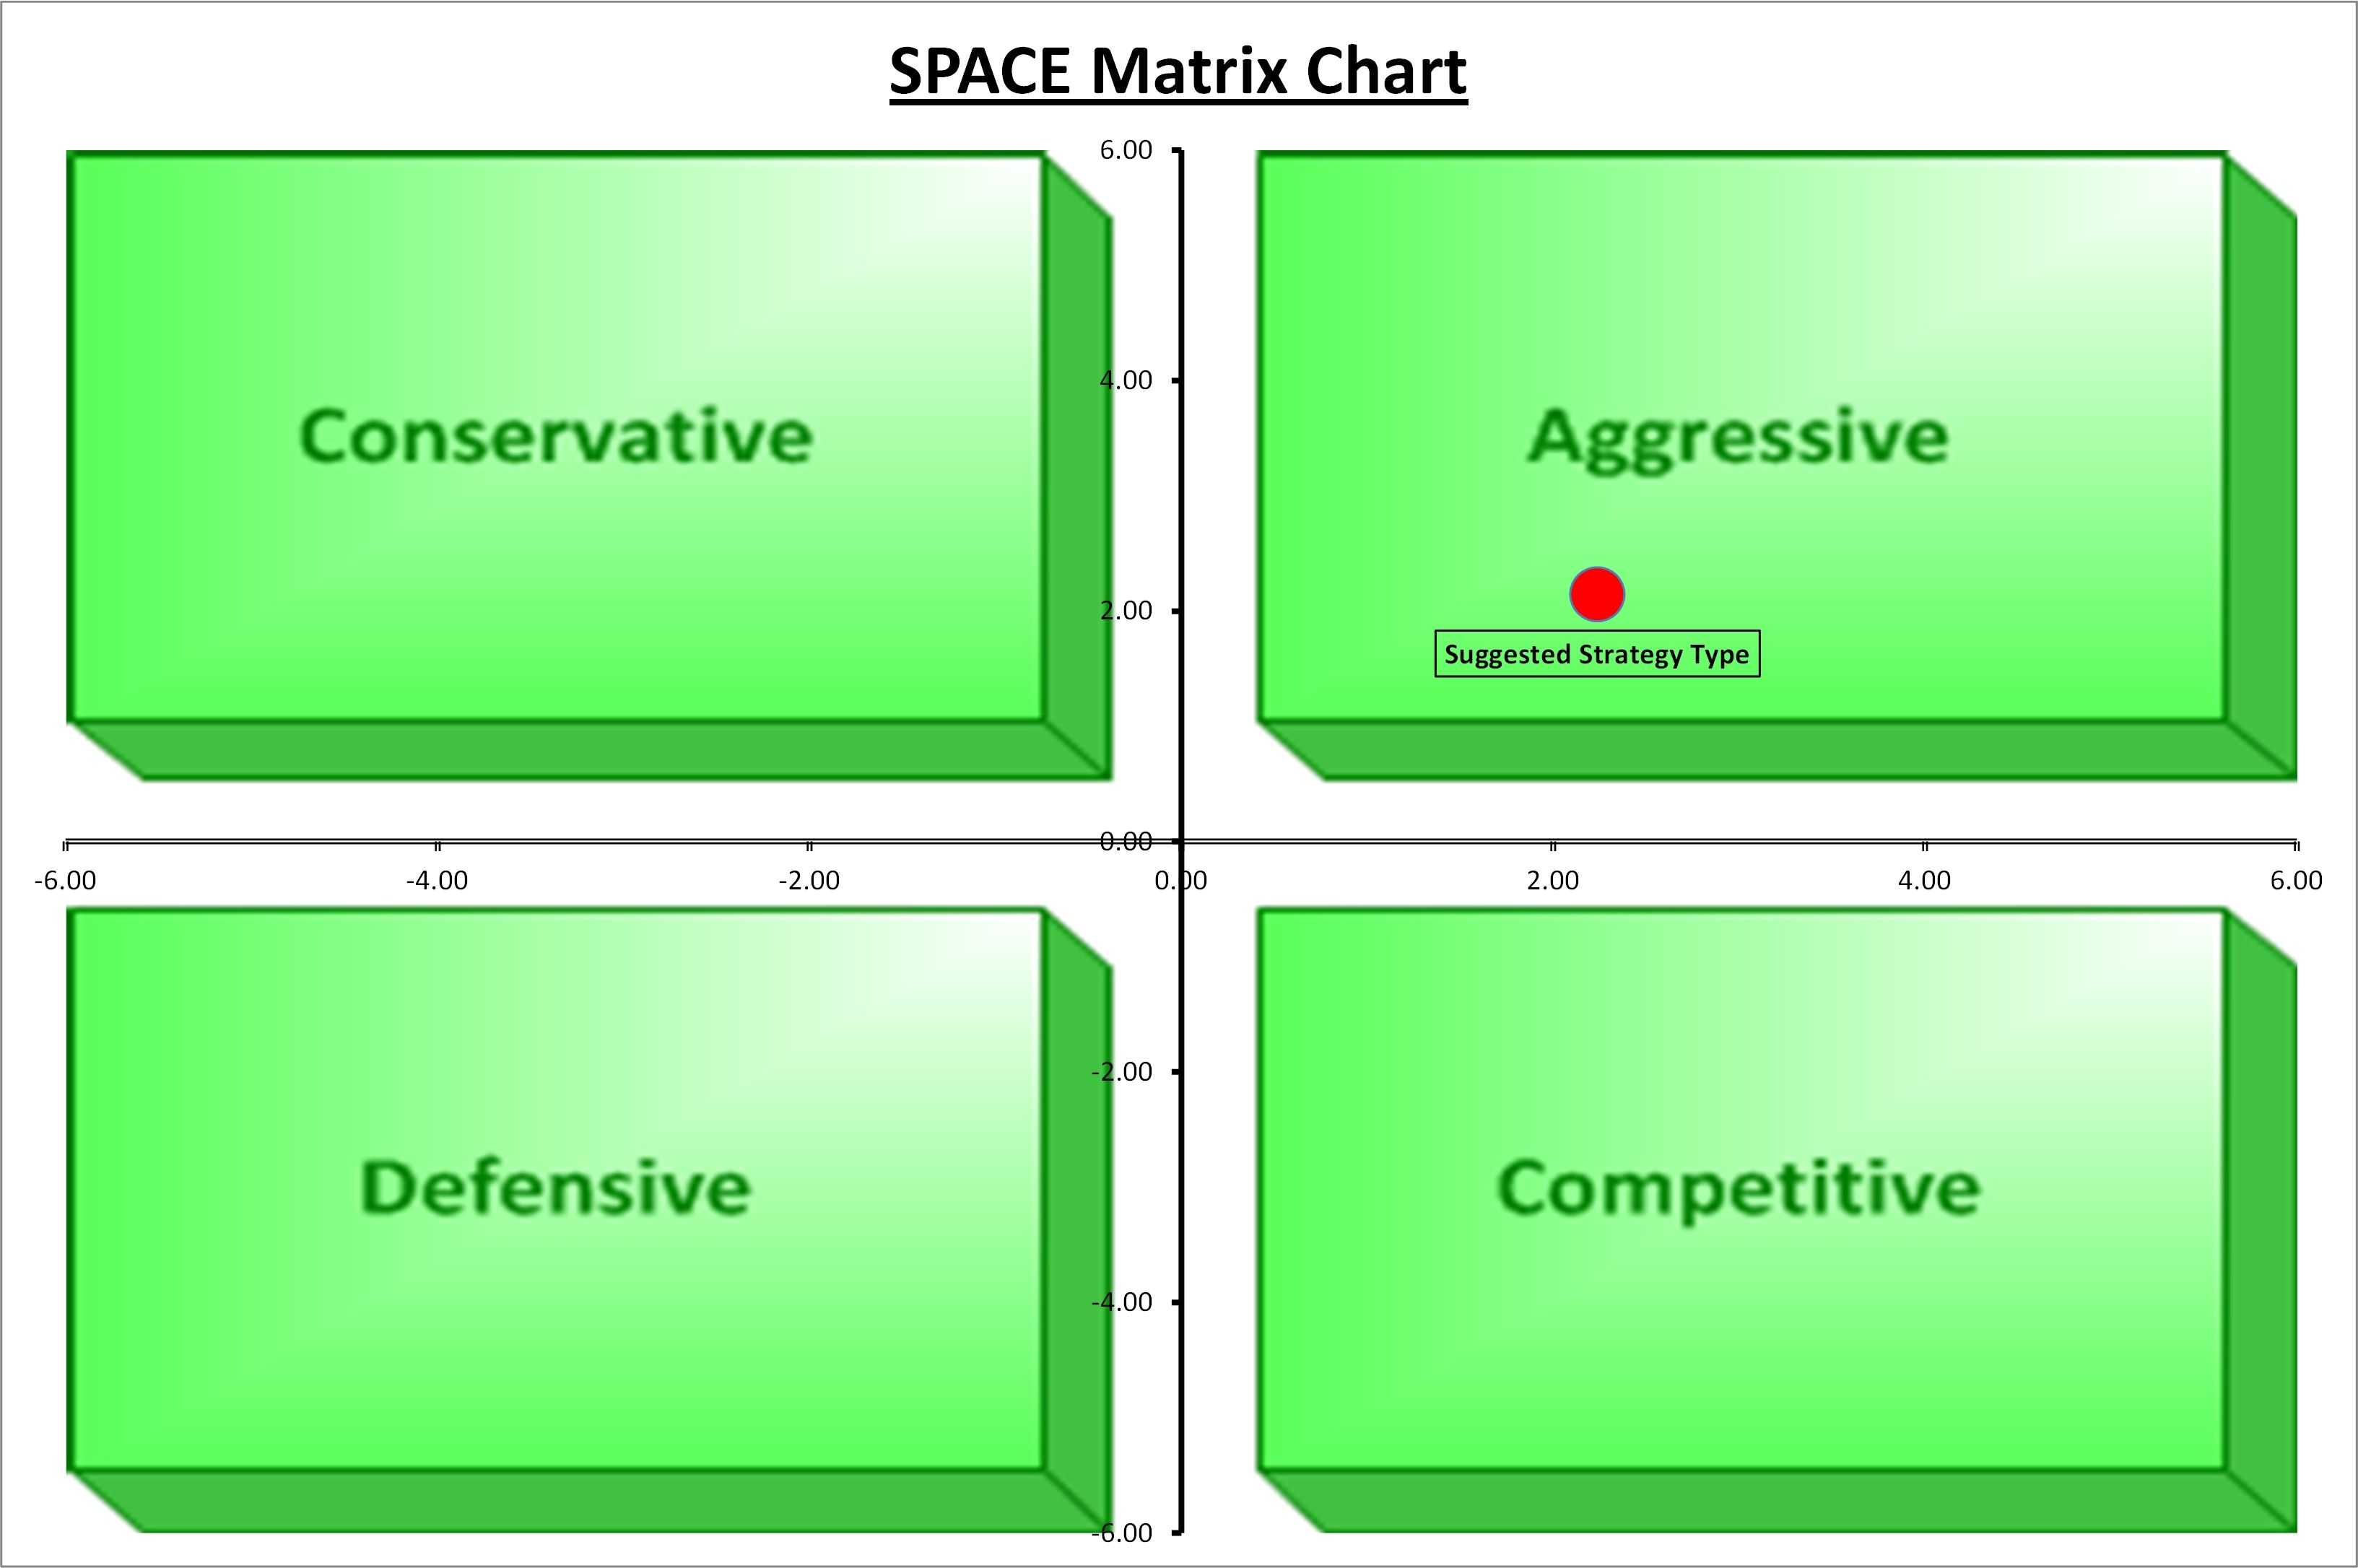 Space matrix chart excel template at the business tools for Intrinsic value calculator excel template